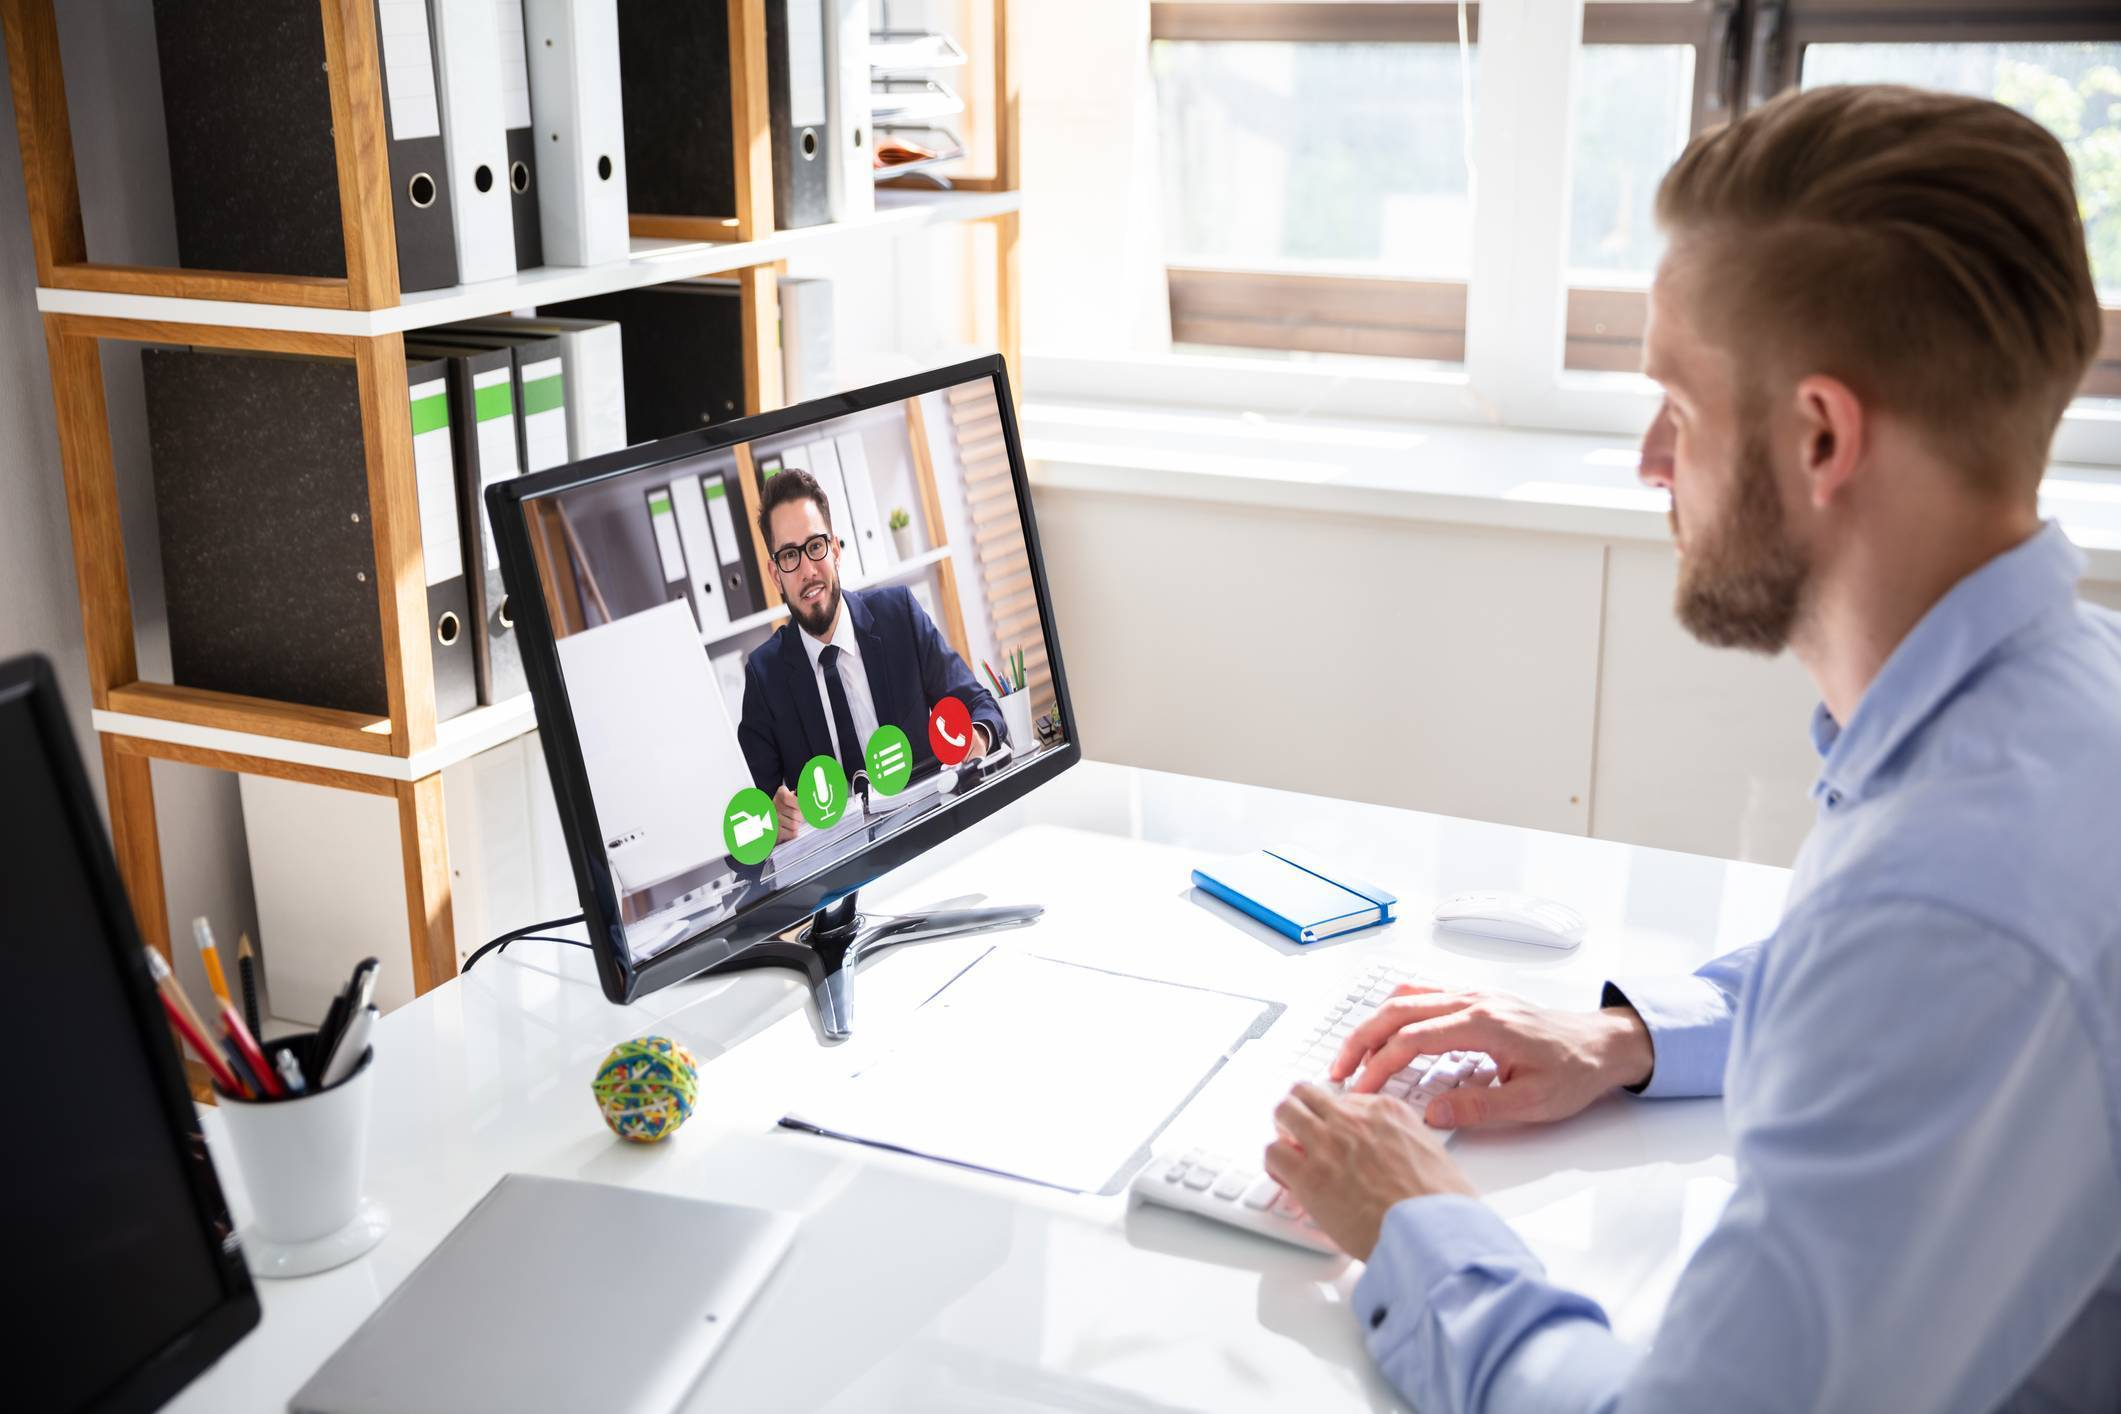 business man video conferencing with sales rep on desktop computer at office desk